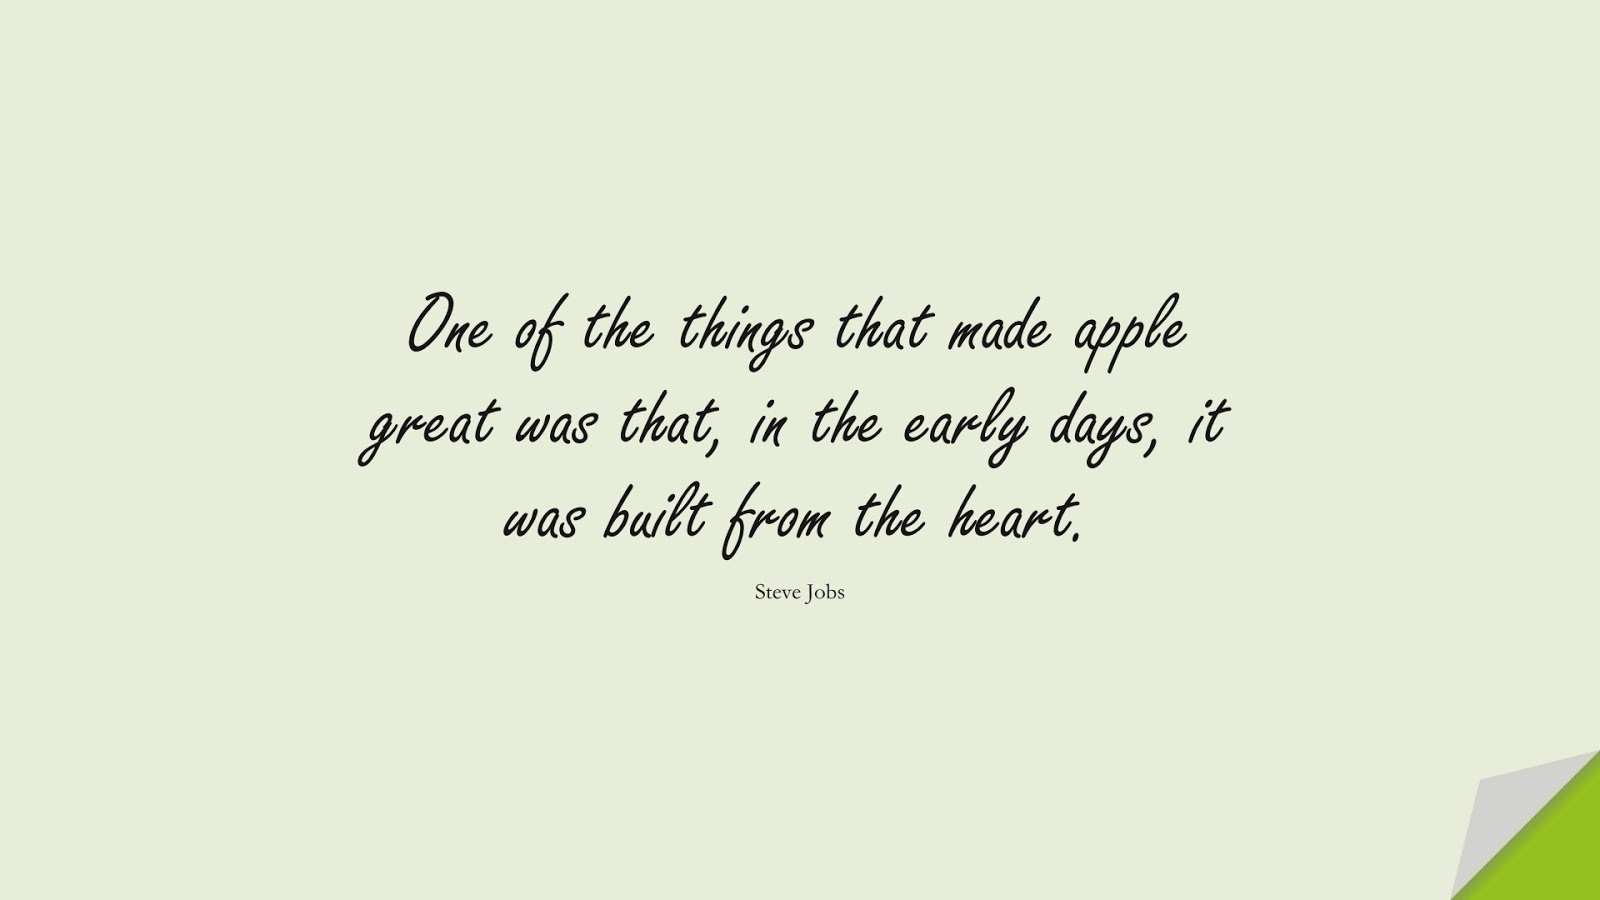 One of the things that made apple great was that, in the early days, it was built from the heart. (Steve Jobs);  #SteveJobsQuotes